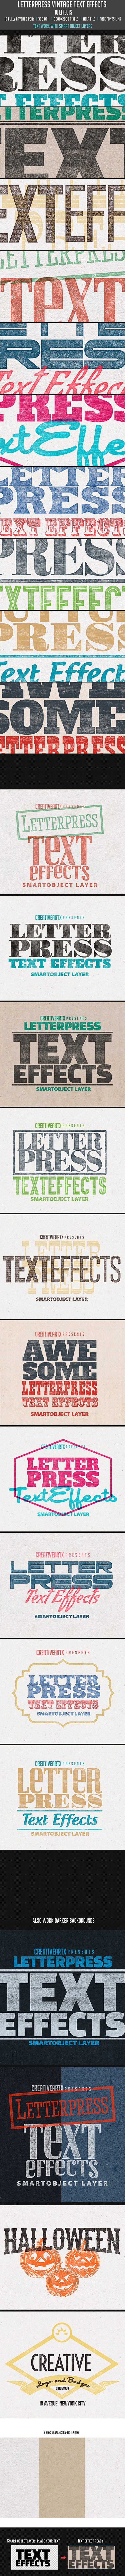 Letterpress Vintage Text Effects